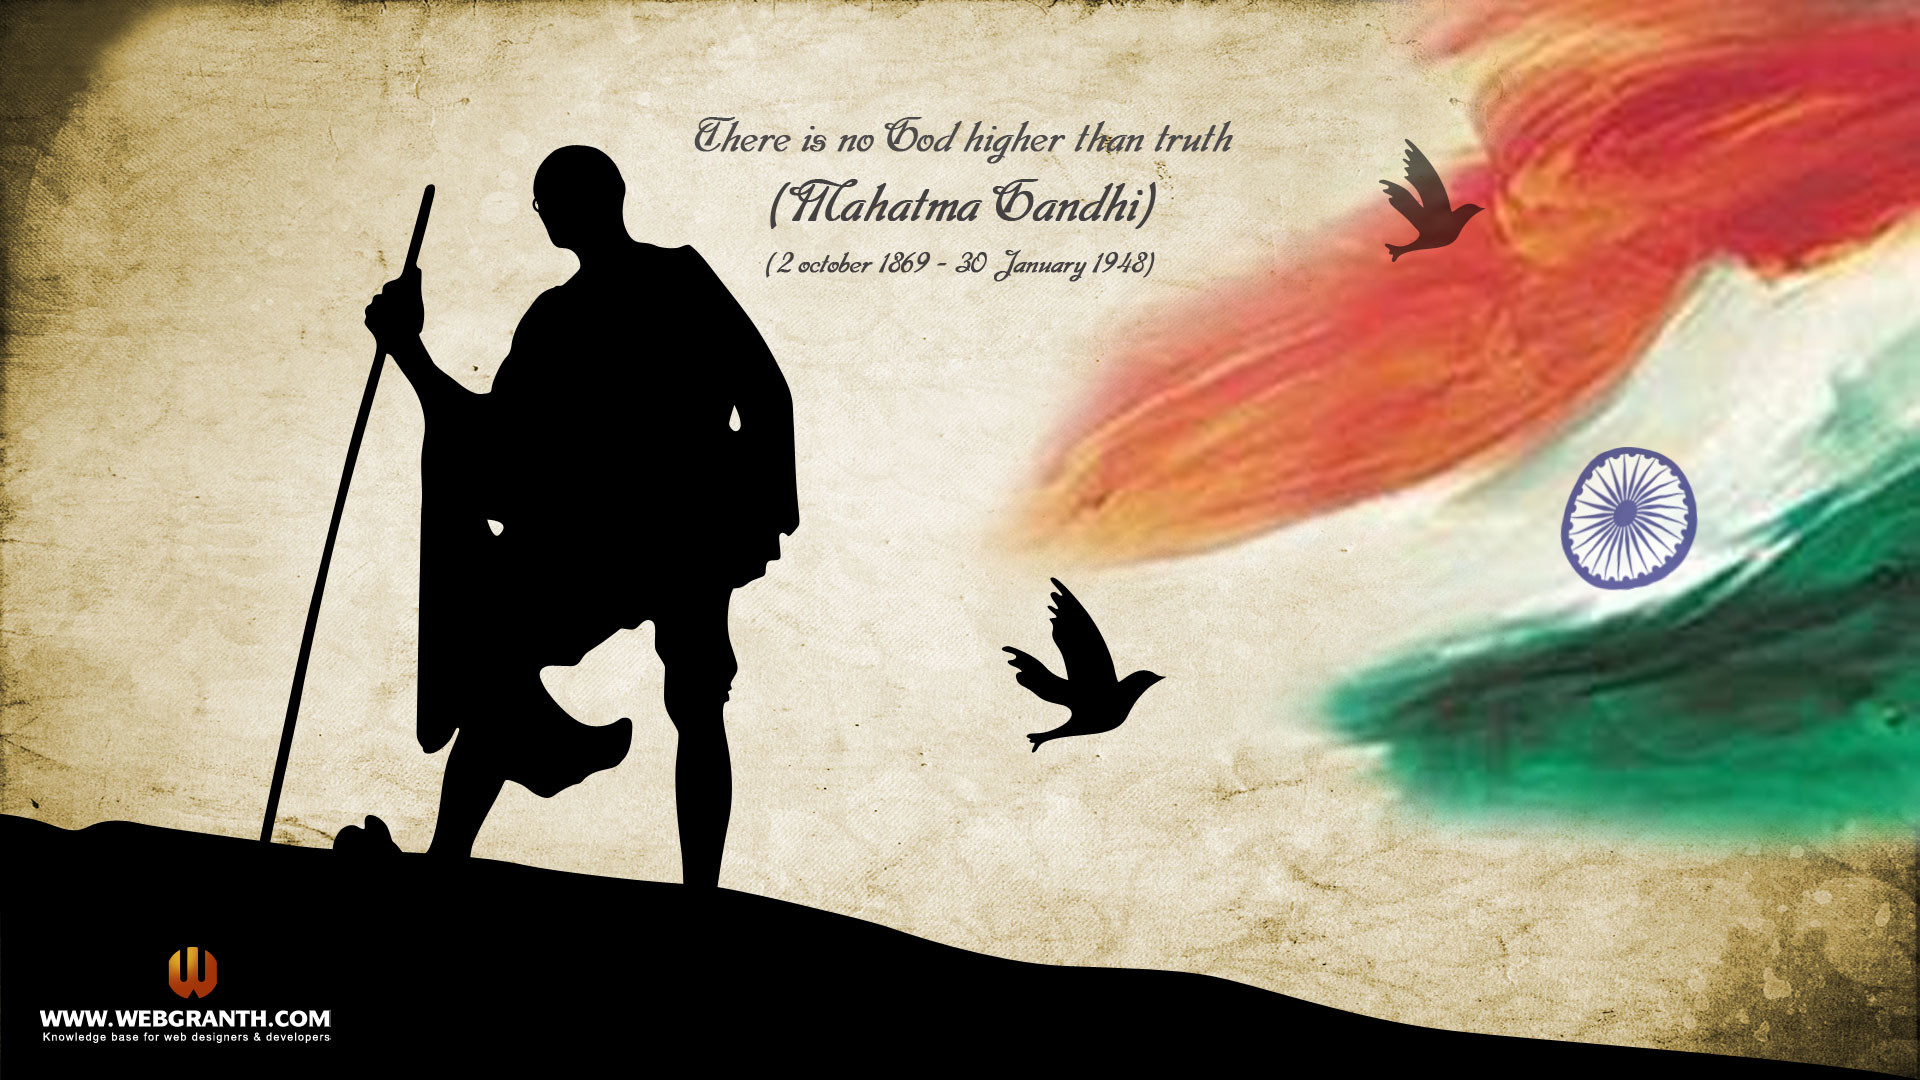 1920x1080 Mahatma Gandhi Independence Day Wallpaper. 15 August Wallpaper 2013